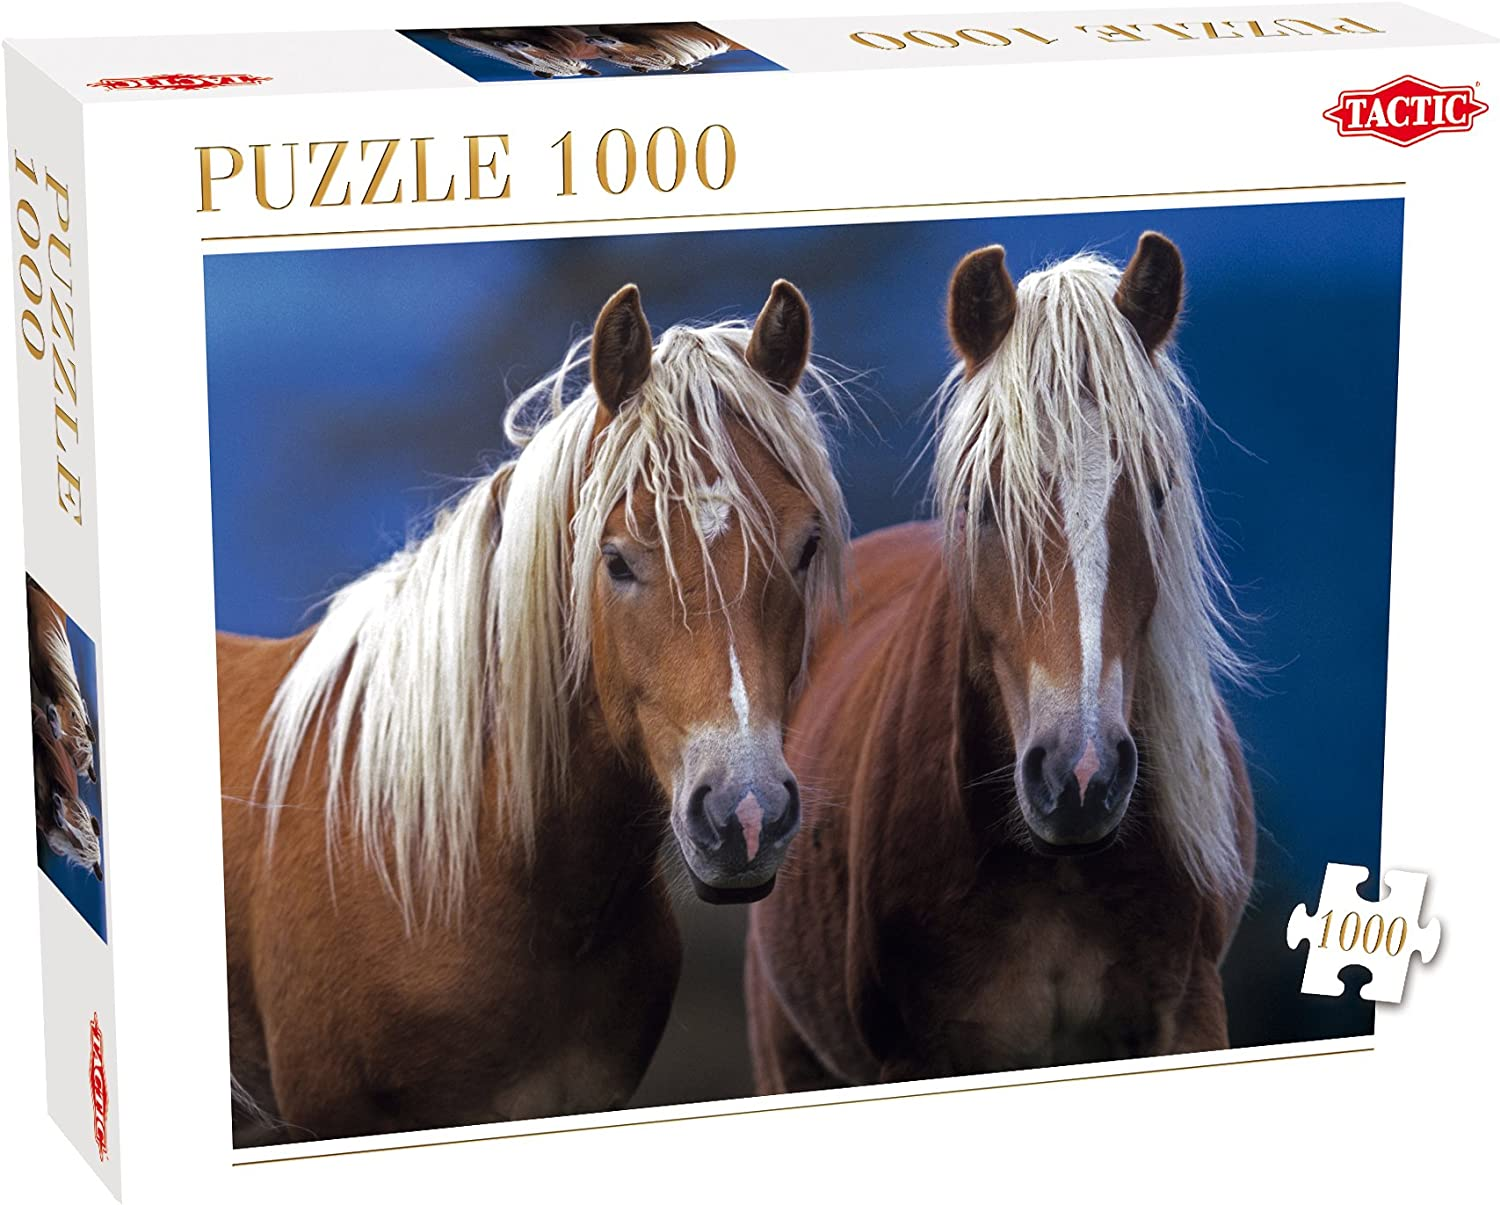 Two Horses Puzzle (1000 Pieces)